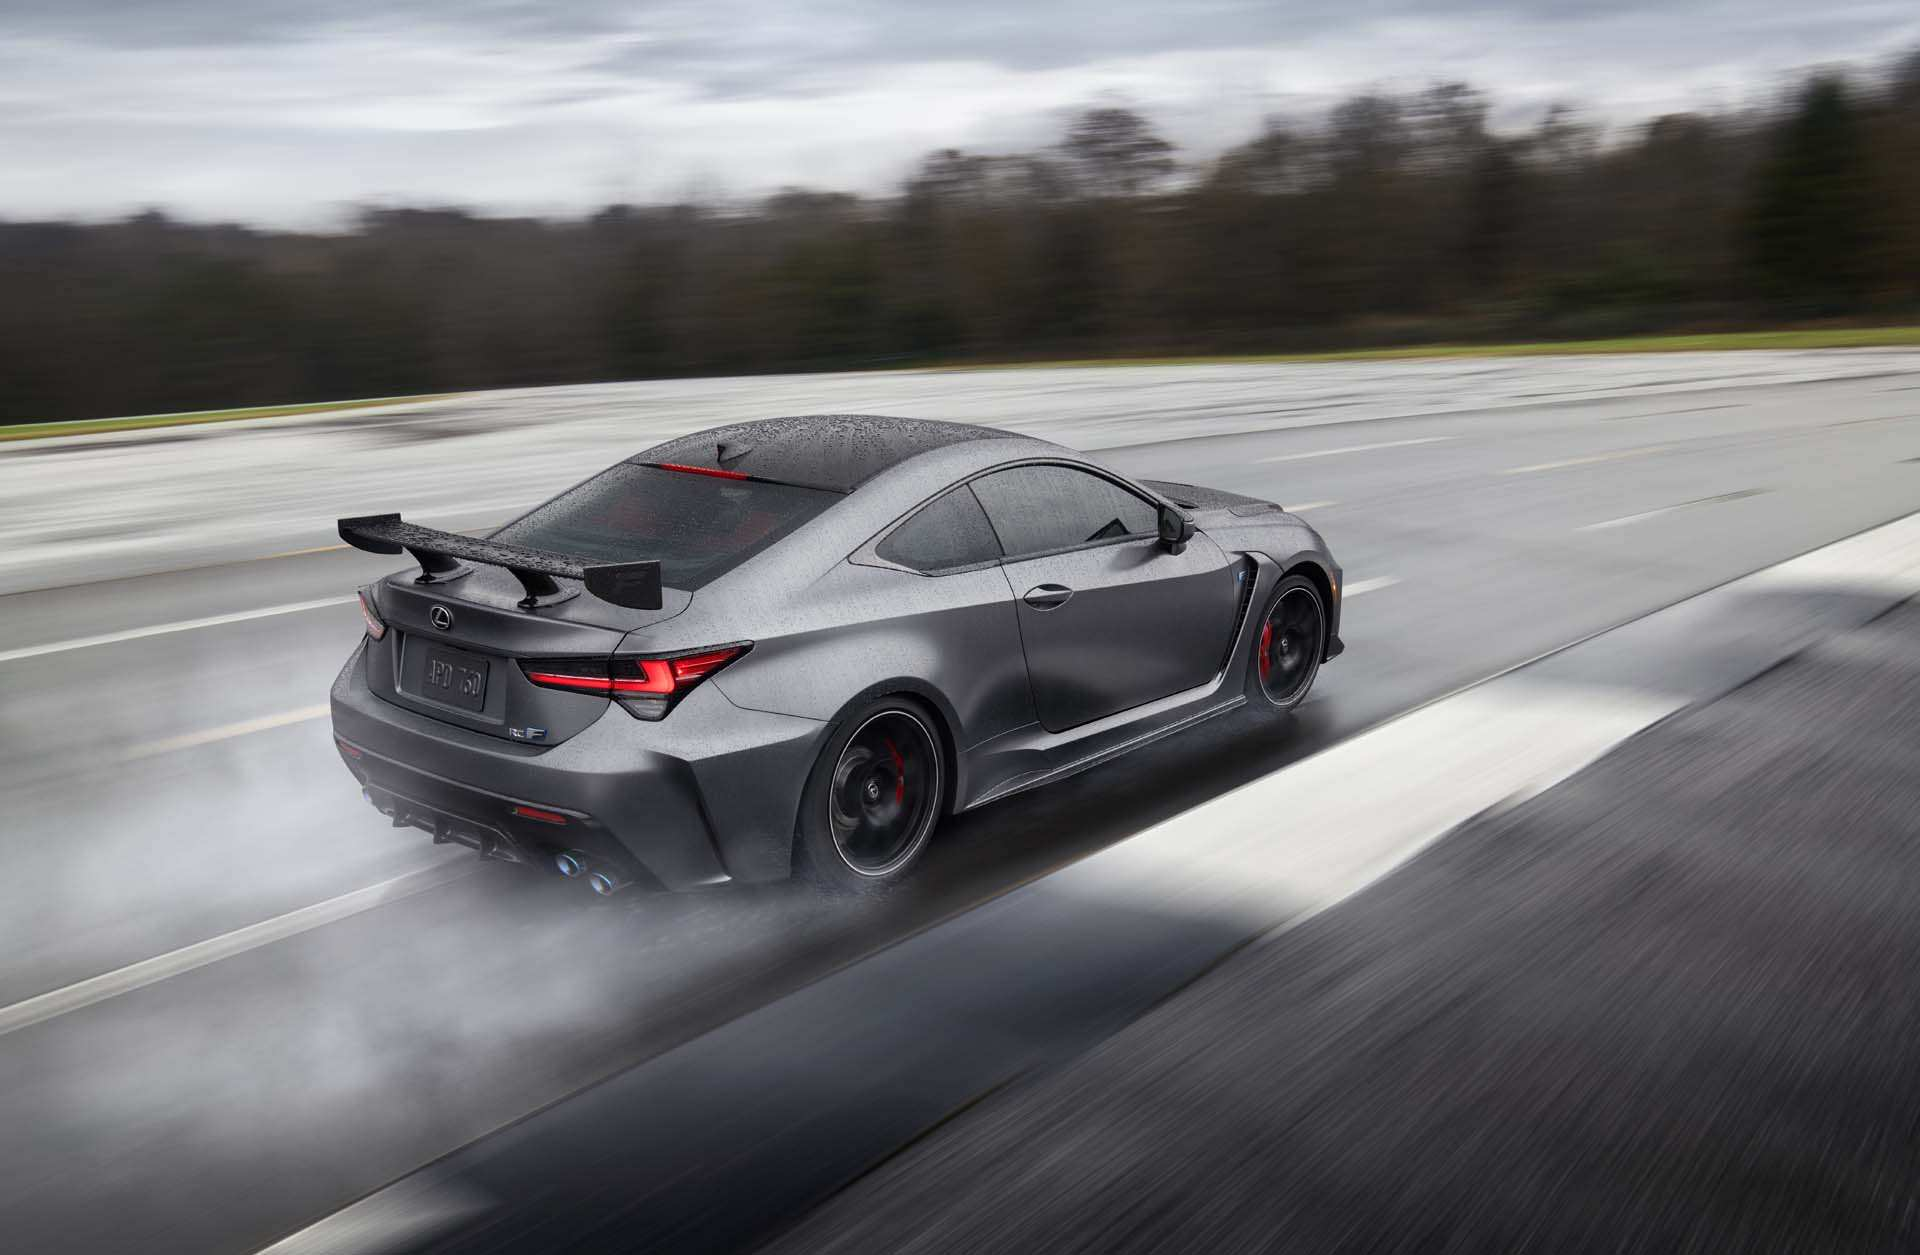 87 The Best 2020 Lexus Rc F Track Edition 0 60 Style